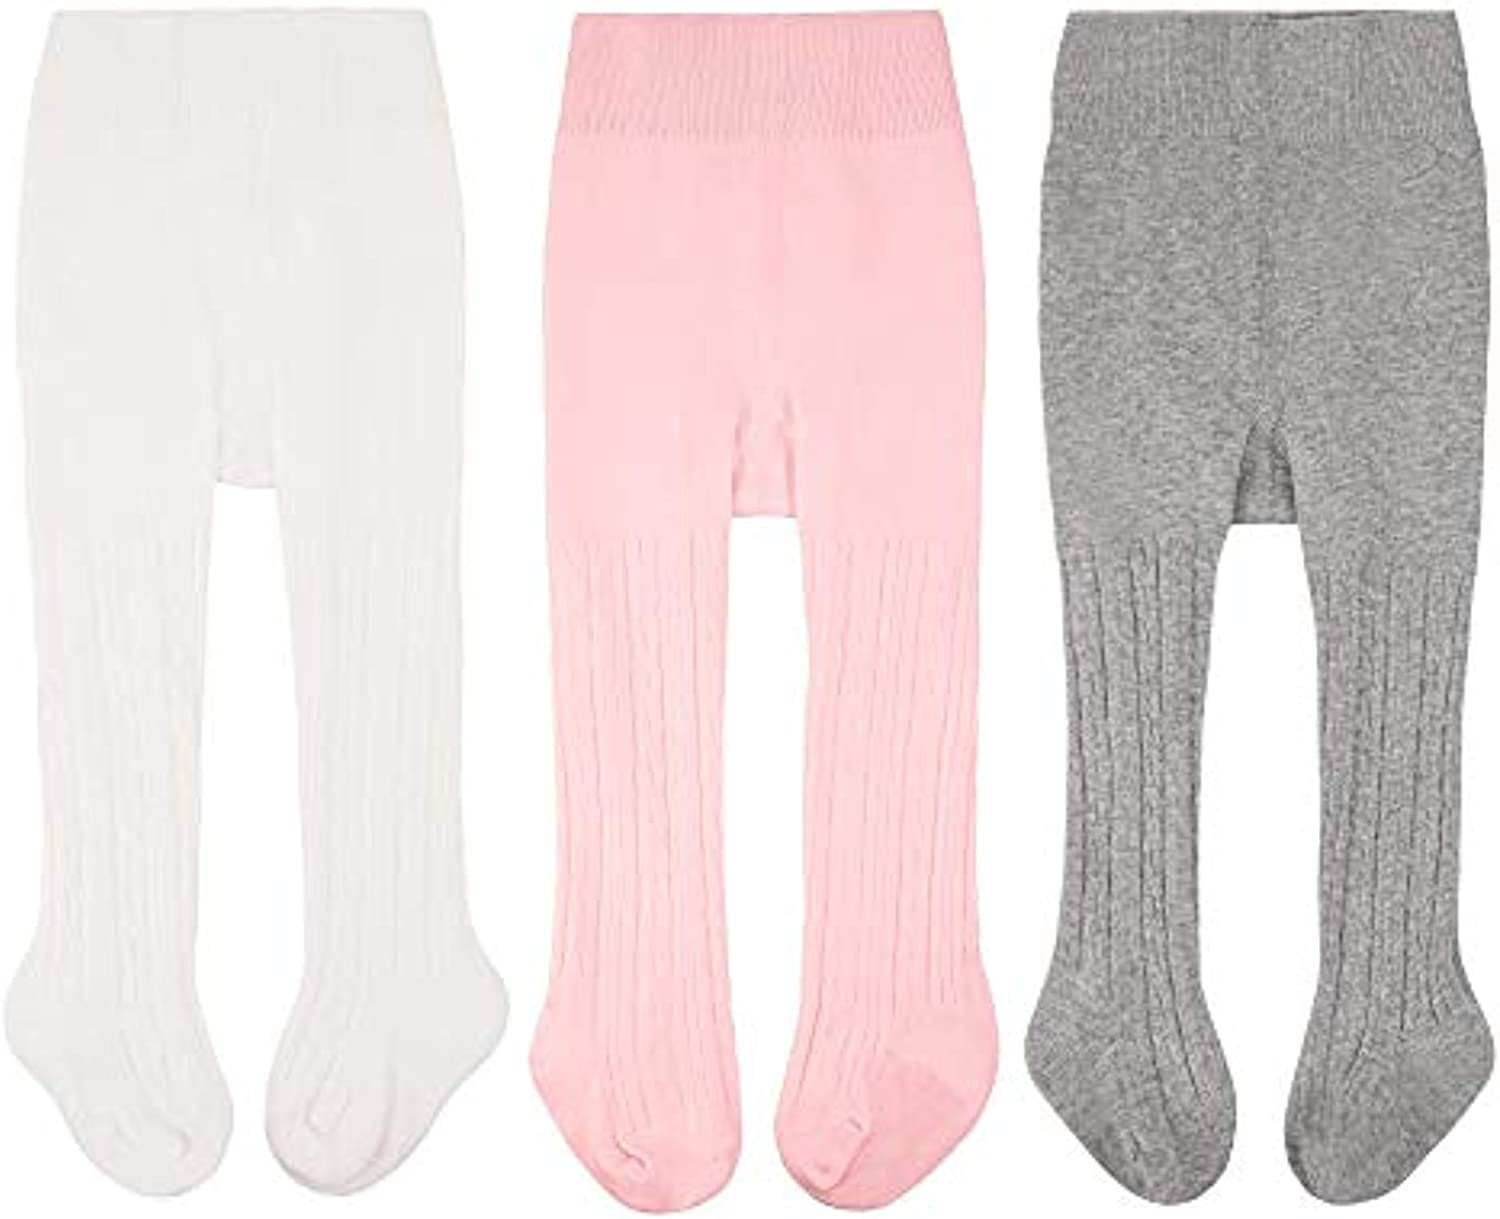 3 Pack Baby Toddler Girls Tights Cable Knit Cotton Seamless Leggings Pantyhose